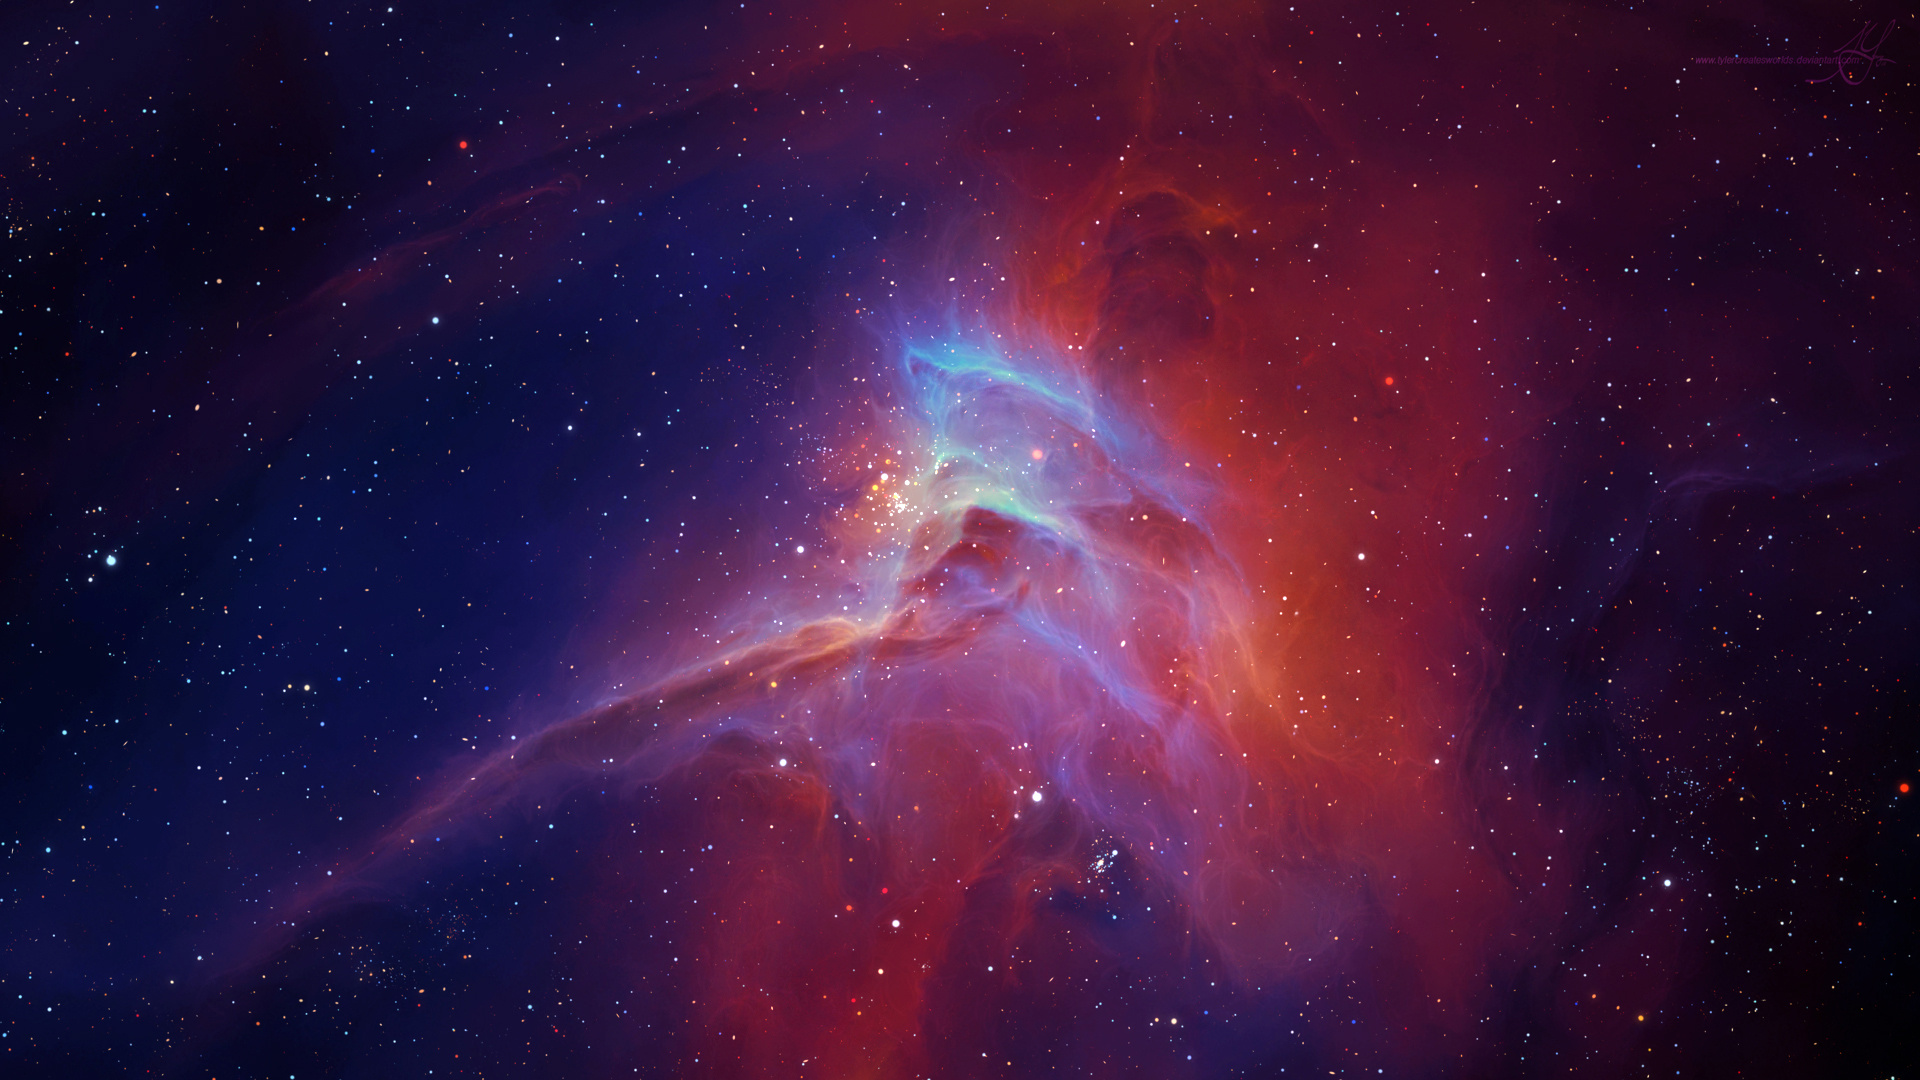 Universe Wallpapers 1080p 75 Images: SpaceBackgrounds Backgrounds Freetoedit Space